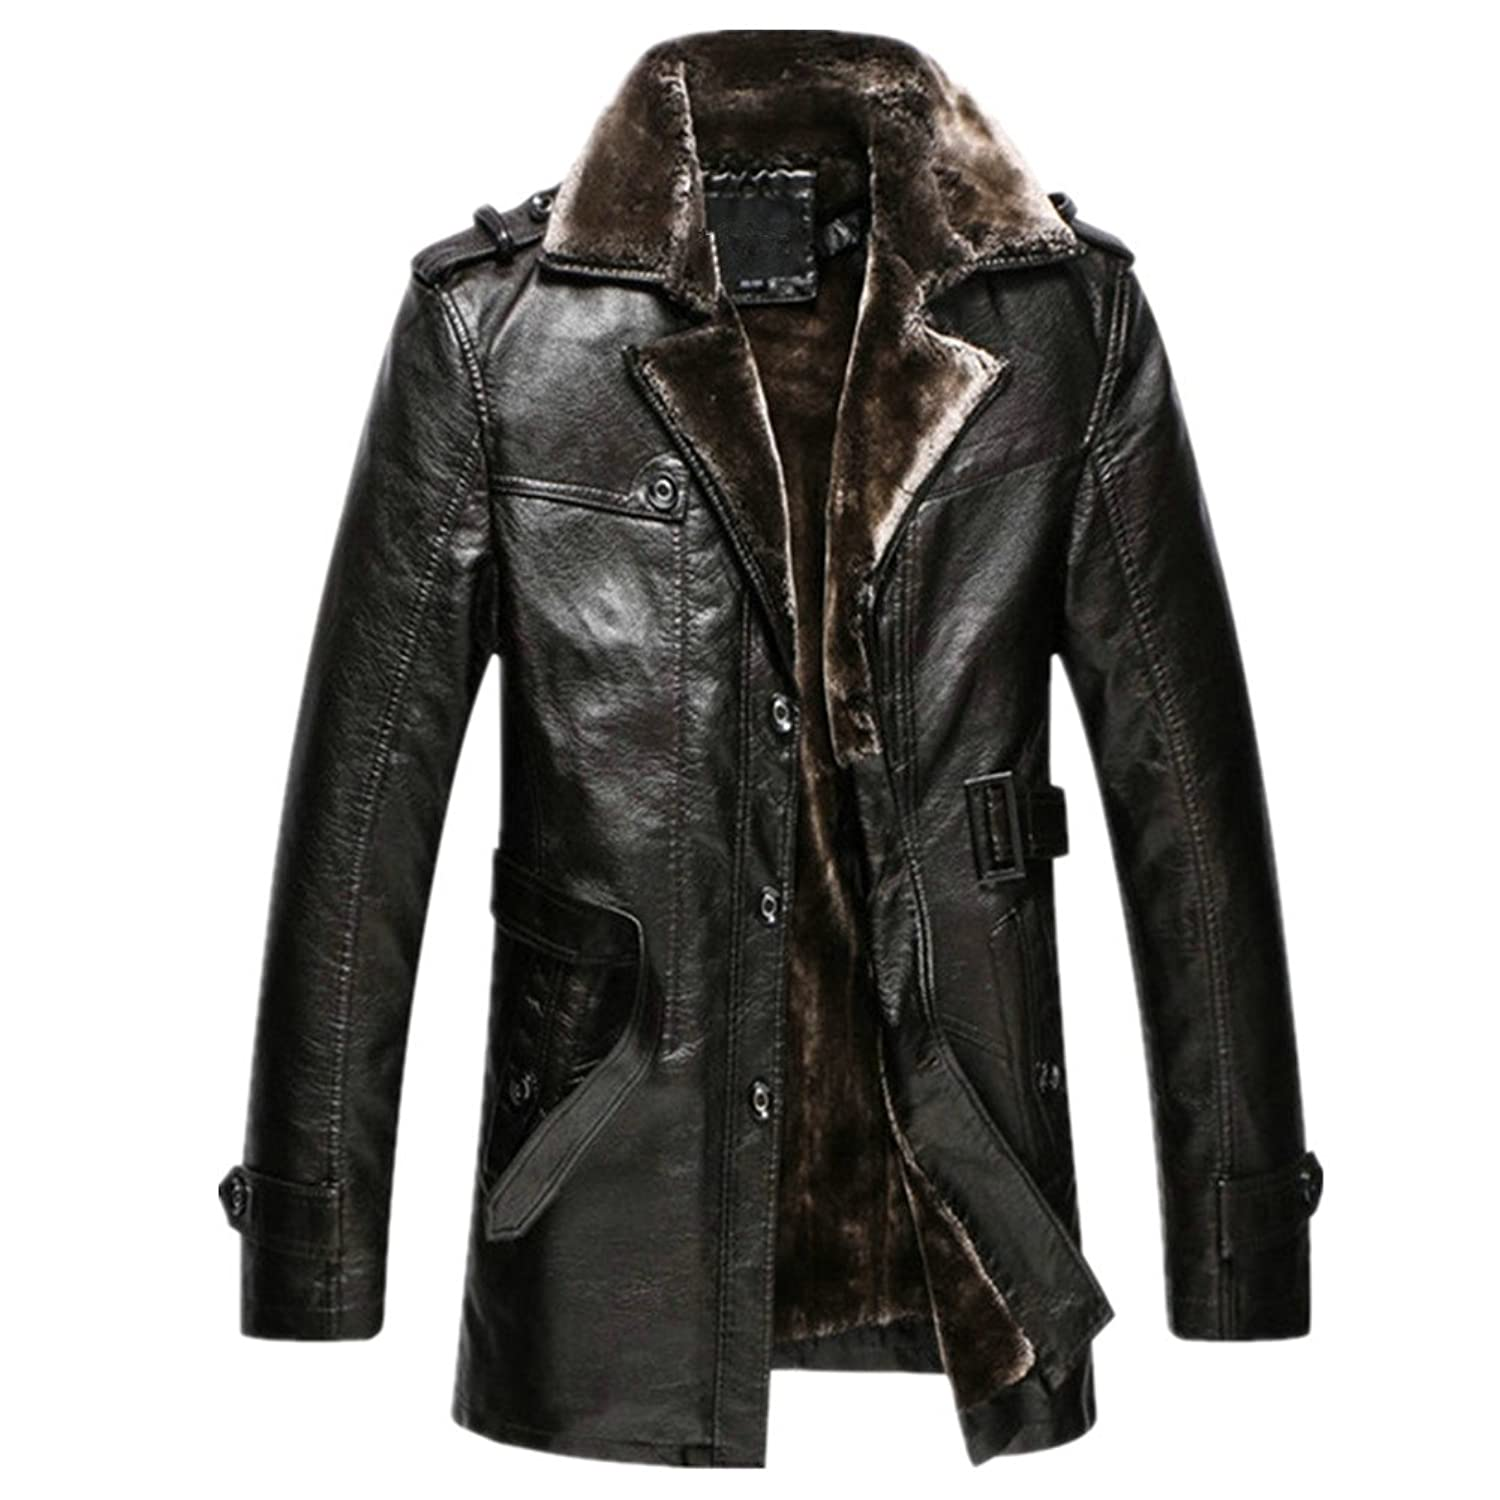 Oyvind Norberg Herren Winter One Suit Fur Collar Leather warme Mantel